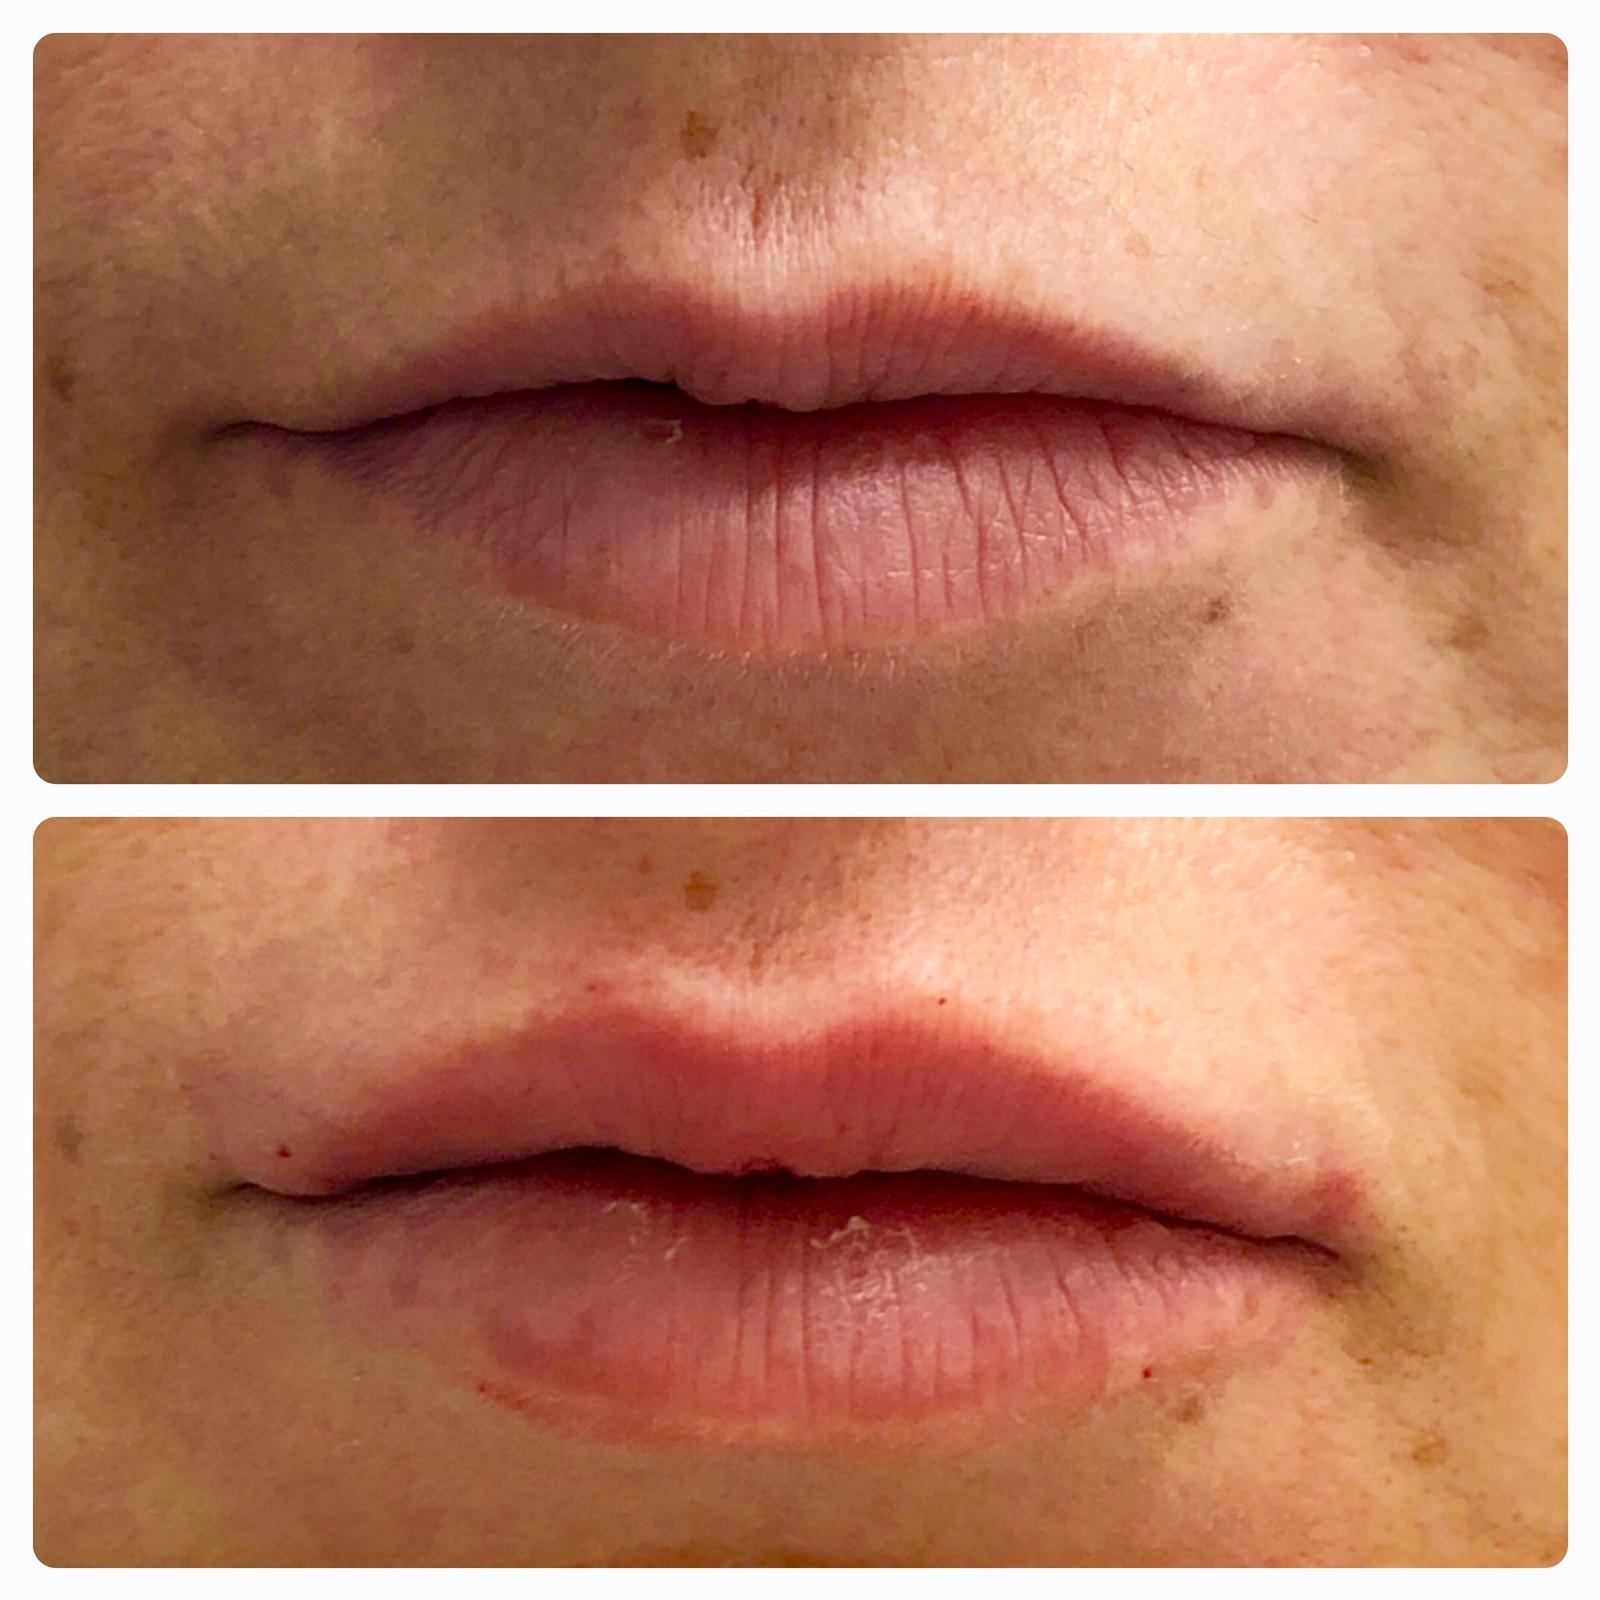 Before and After Lip Filler - bottom lip is more proportional with bottom lip